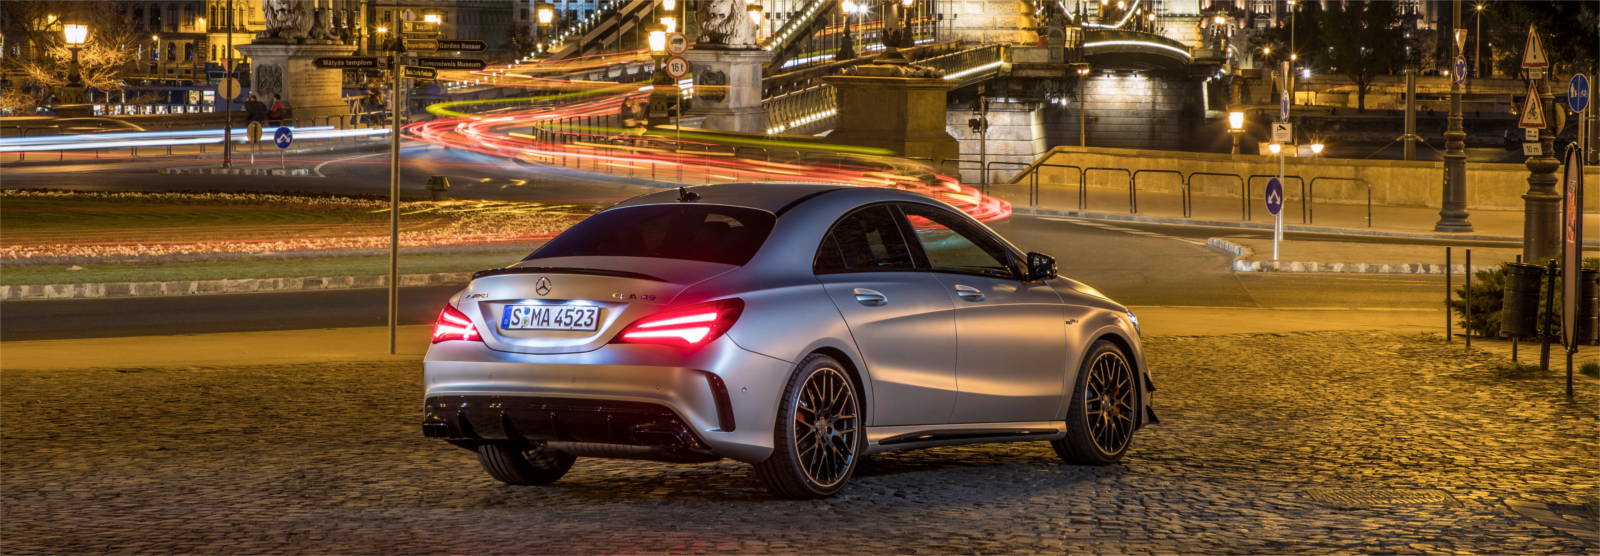 Lateral mercedes cla